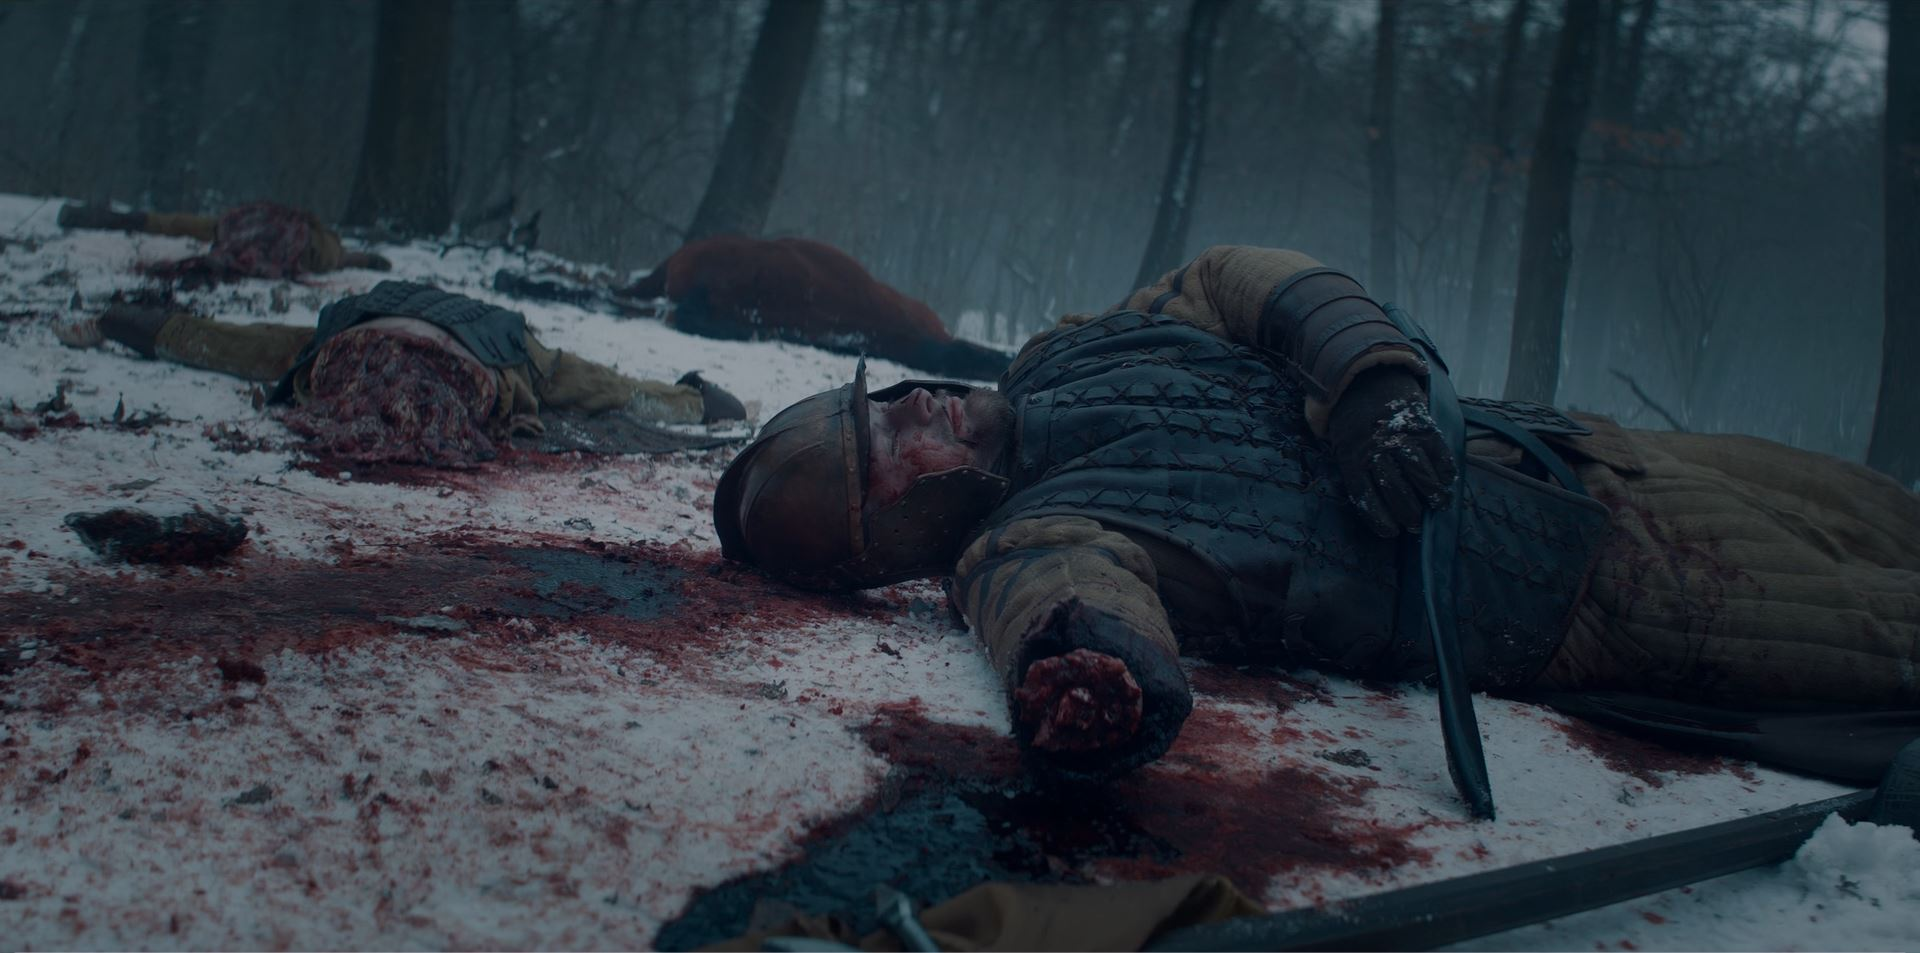 The Witcher - dead bodies